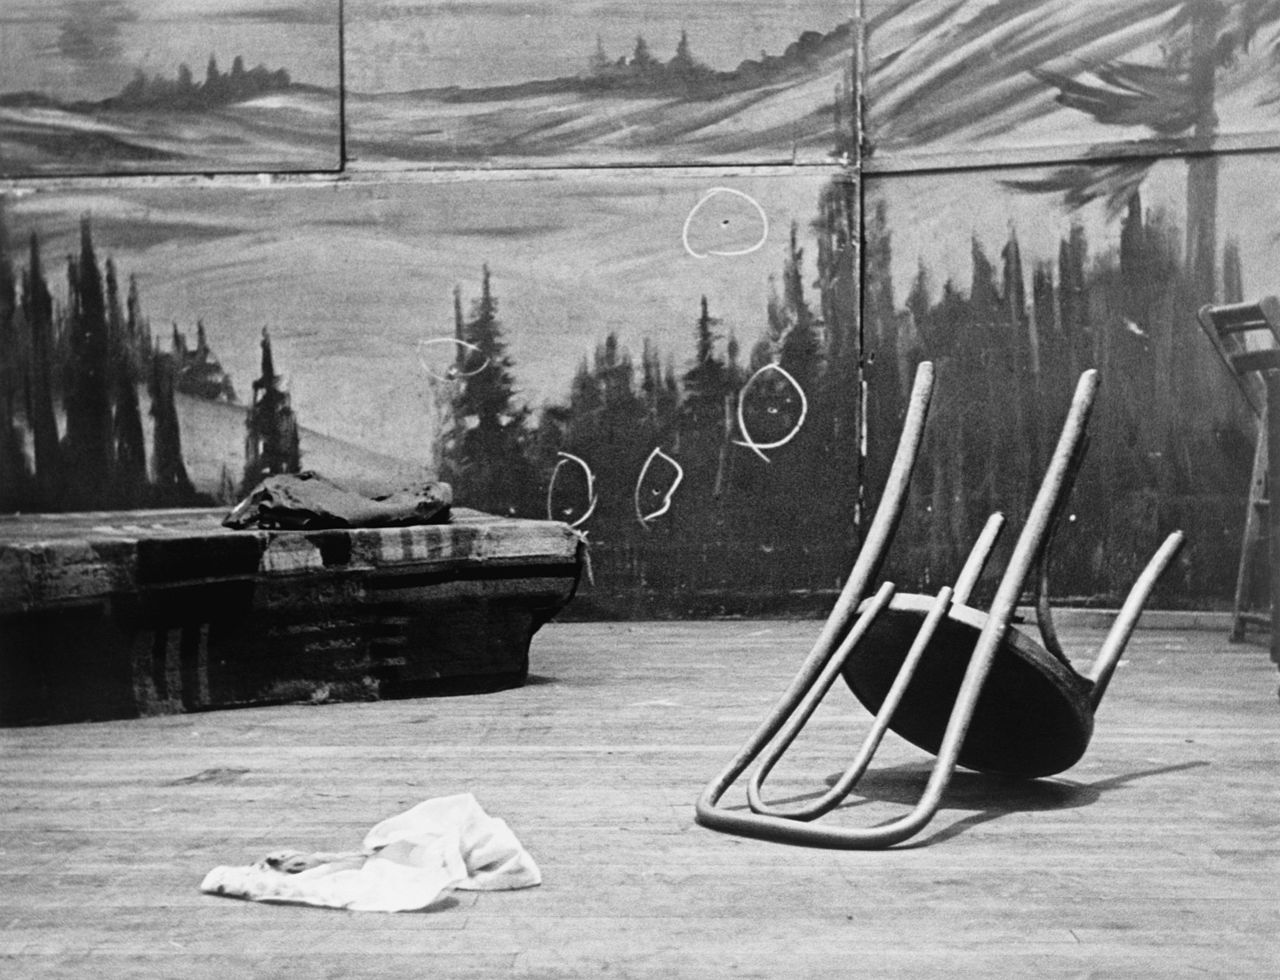 An overturned chair in front of a mural, on which several chalk circles have been drawn around bullet-holes